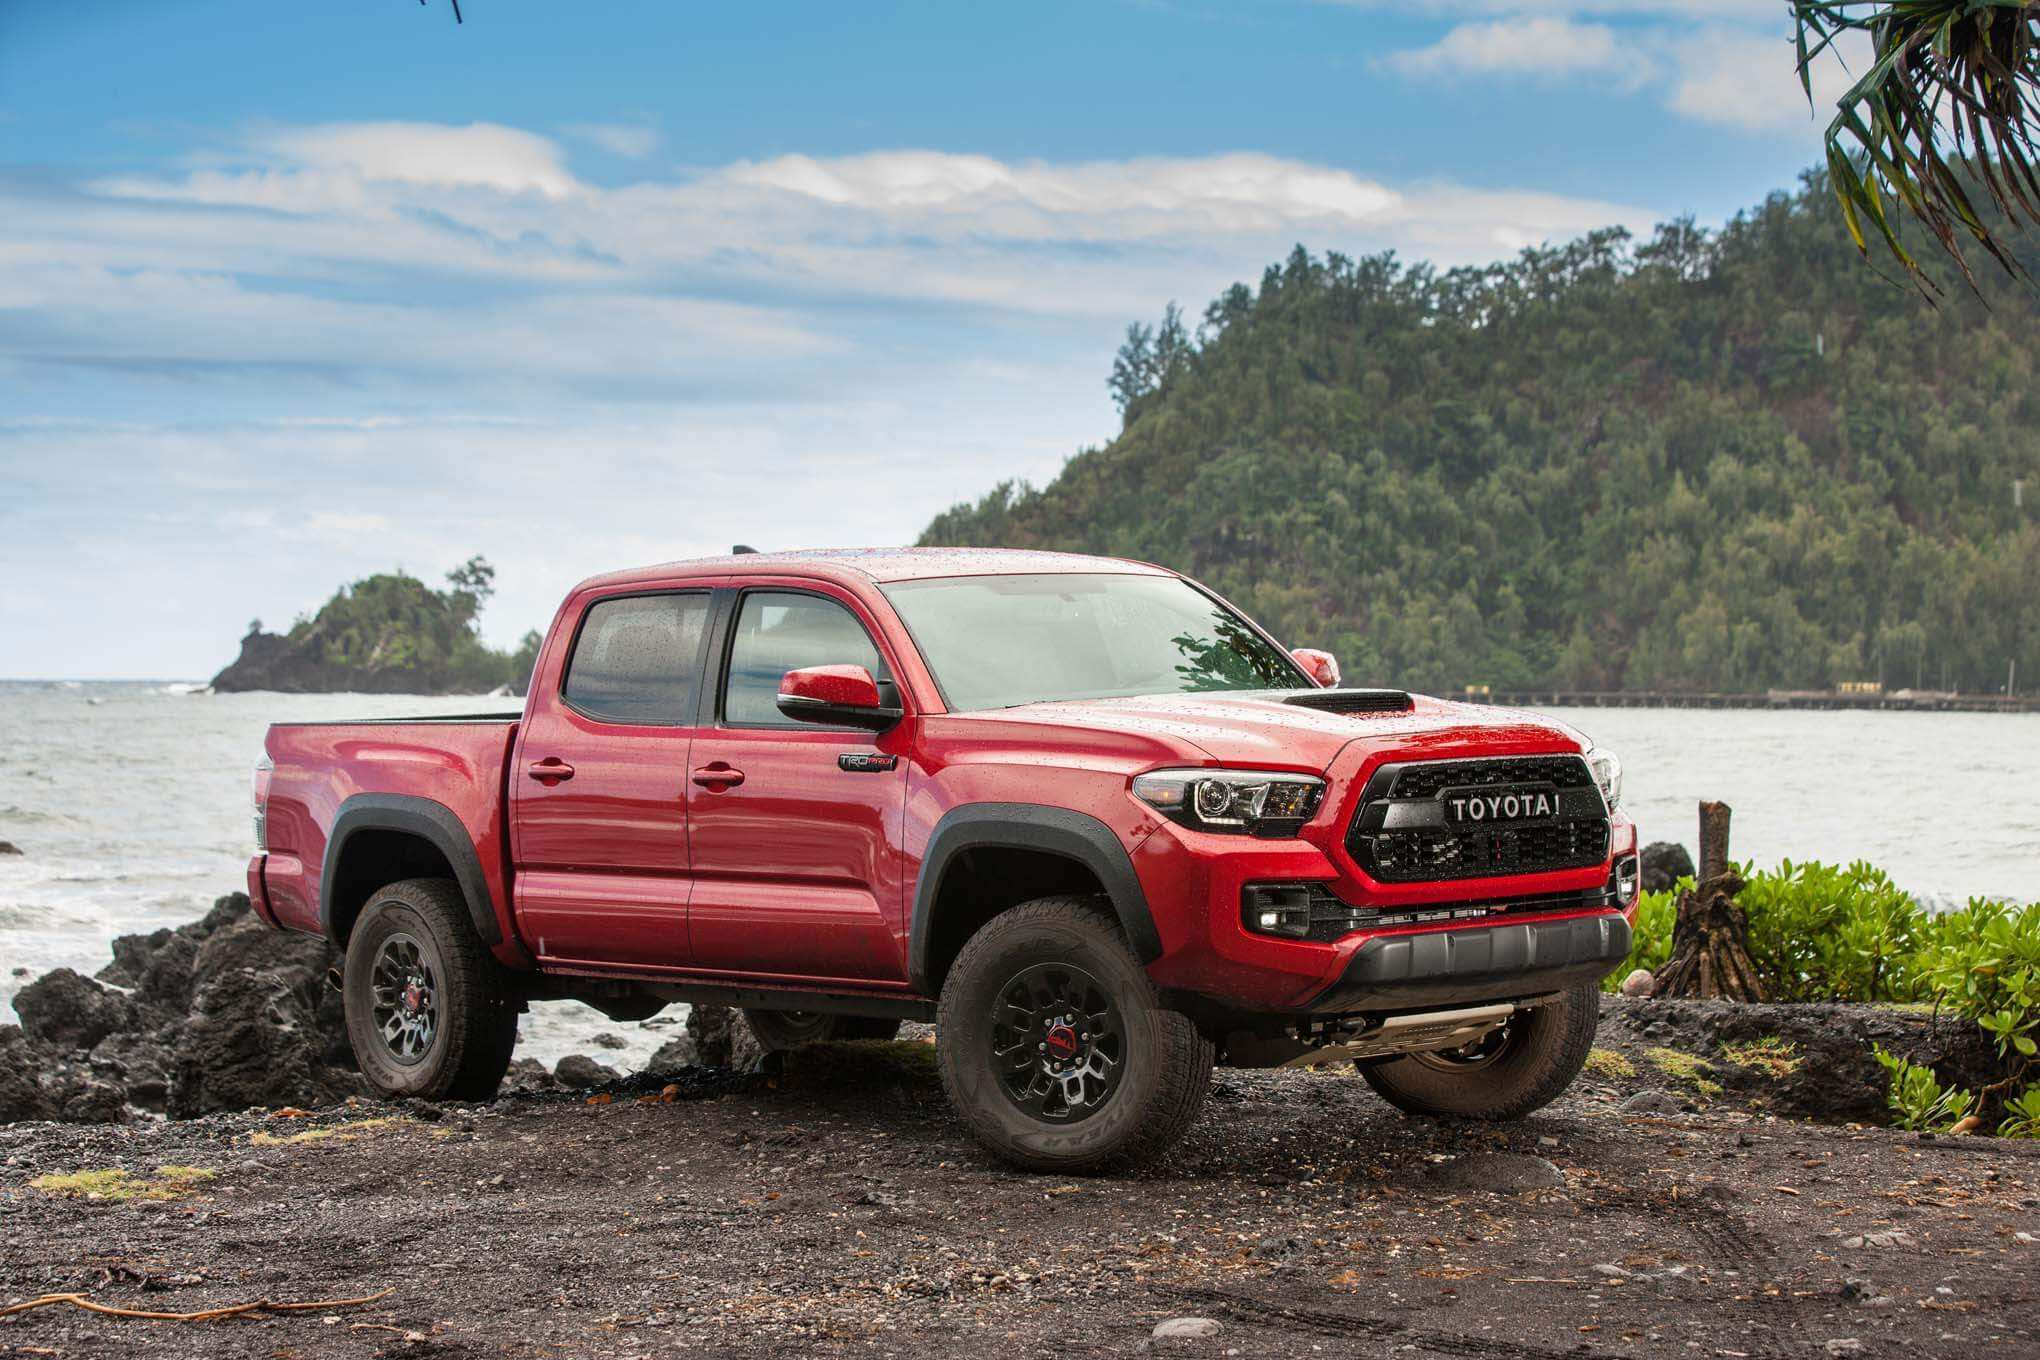 72 Great 2020 Toyota Tacoma Trd Pro Release Date for 2020 Toyota Tacoma Trd Pro